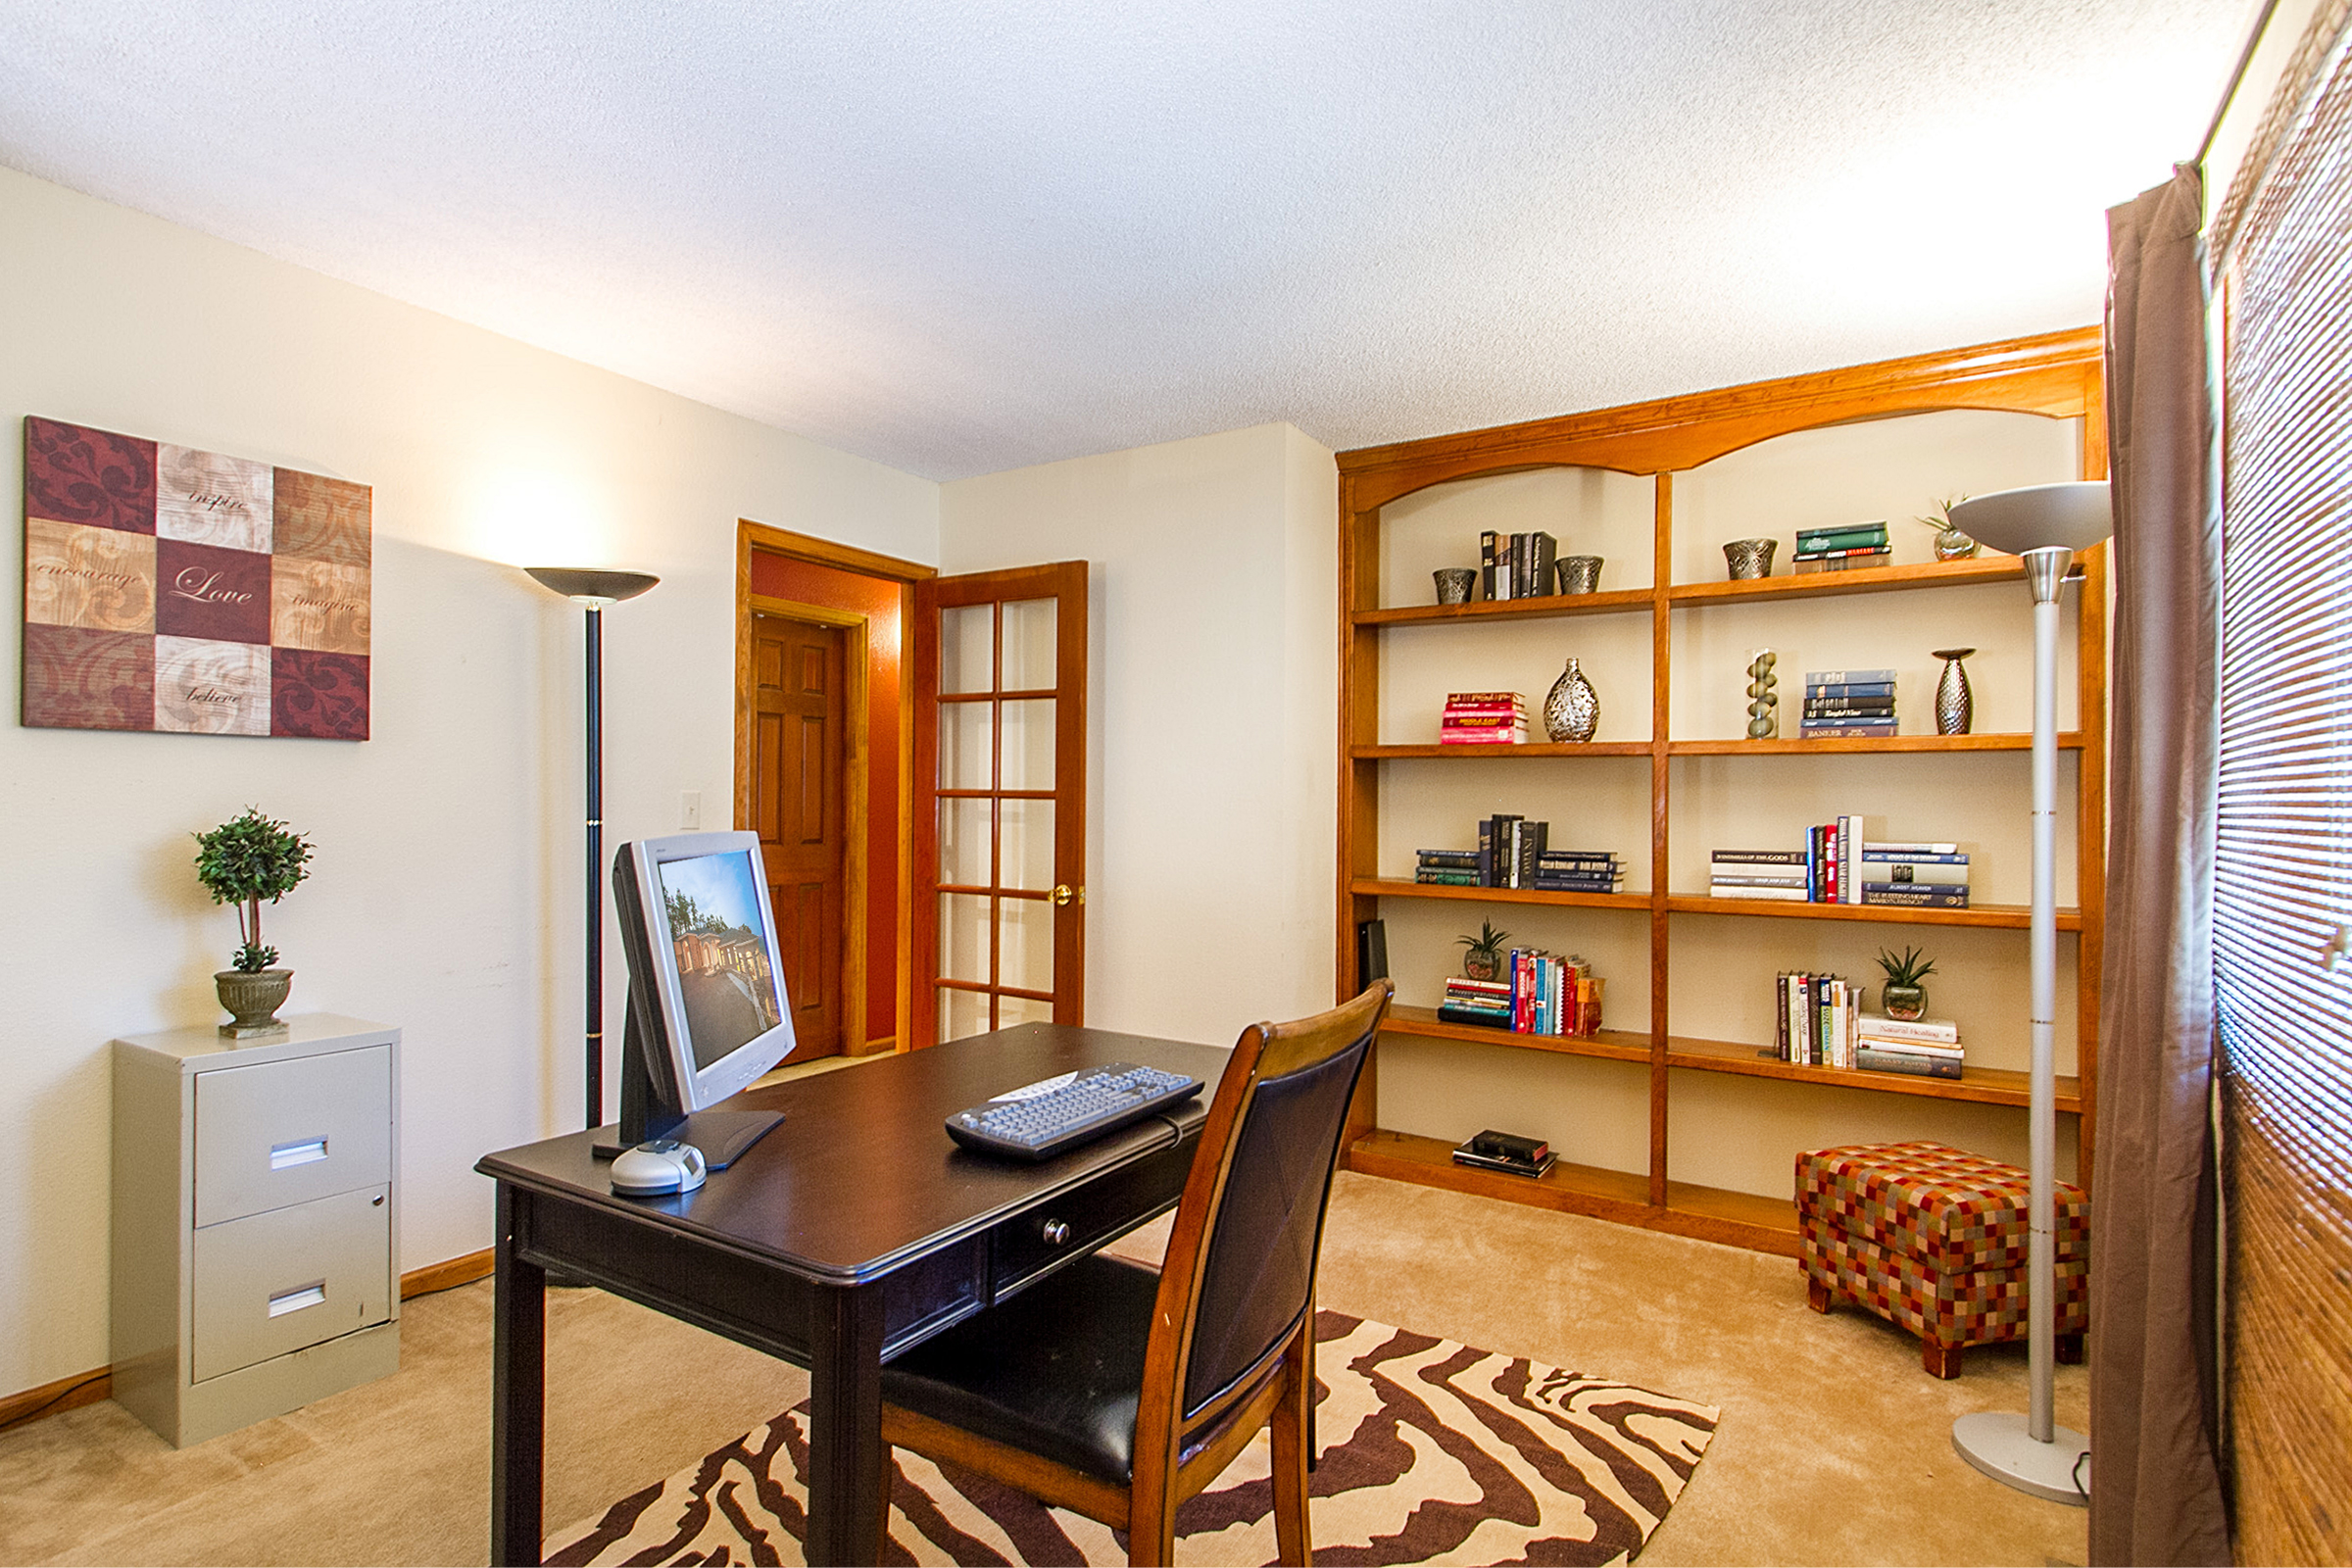 1297125_Loft-Study-Has-Built-In-Bookcases_high.jpg